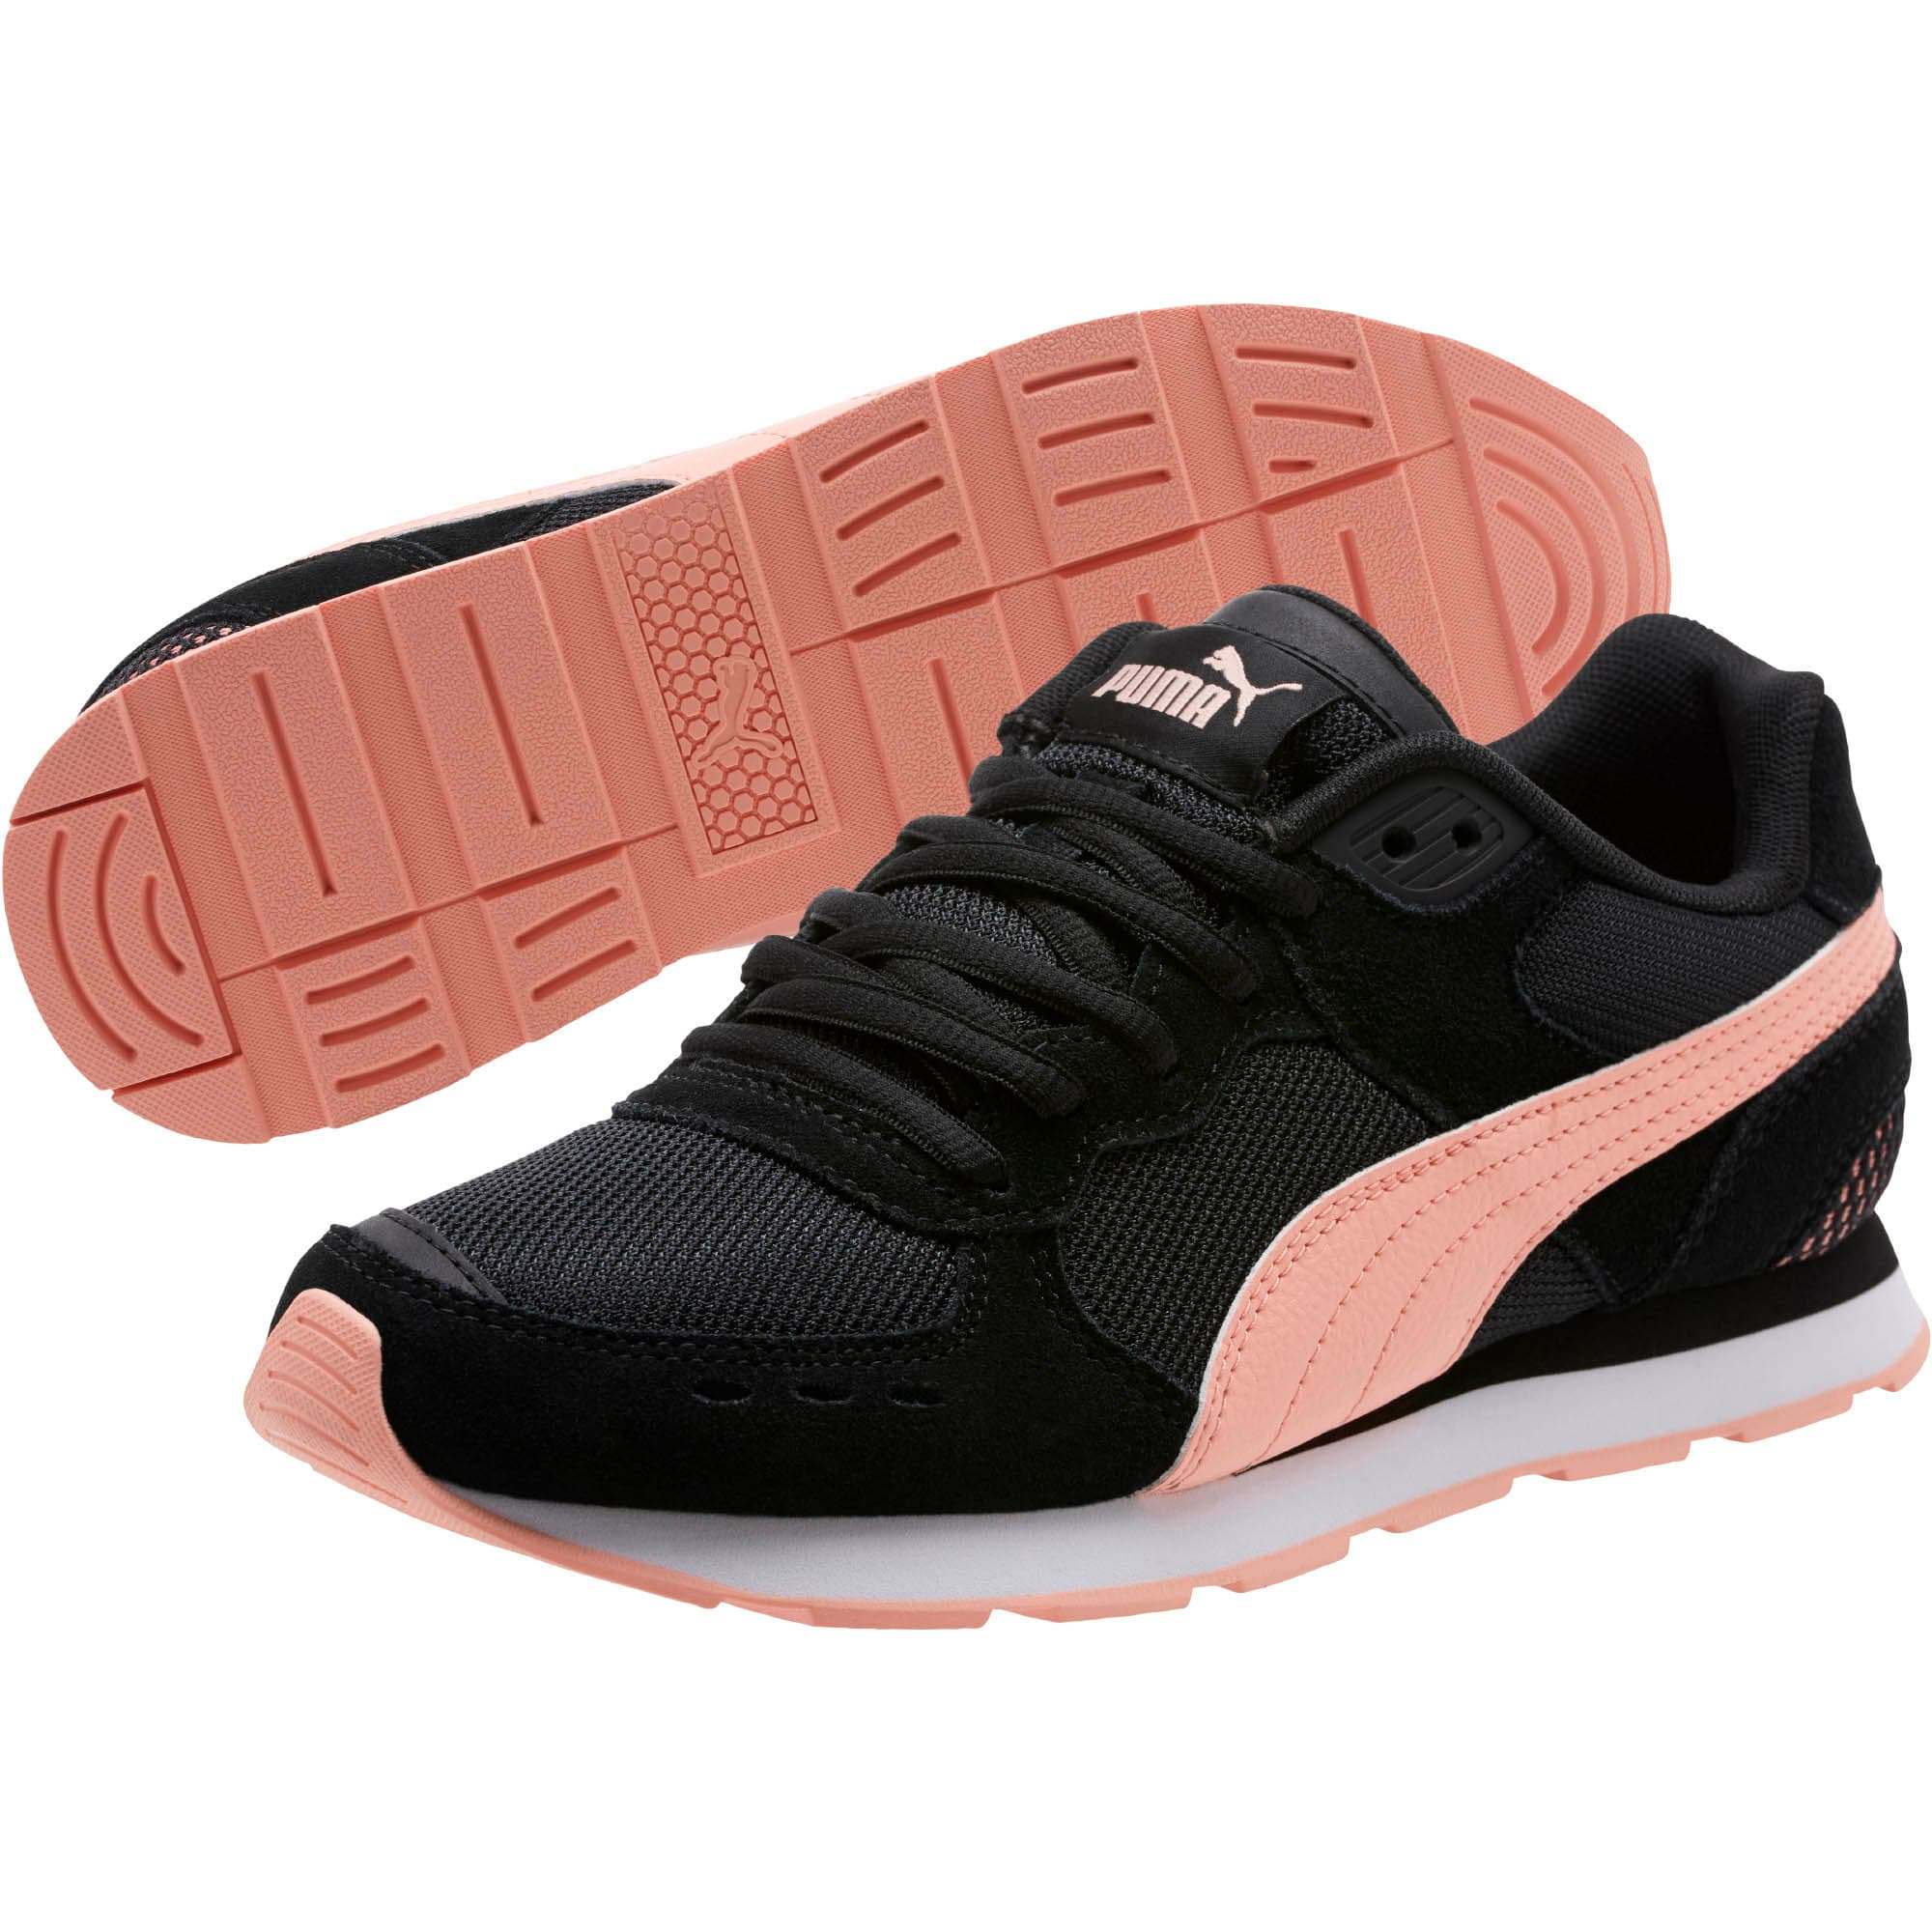 Thumbnail 2 of Vista Women's Sneakers, Puma Black-Peach Bud, medium